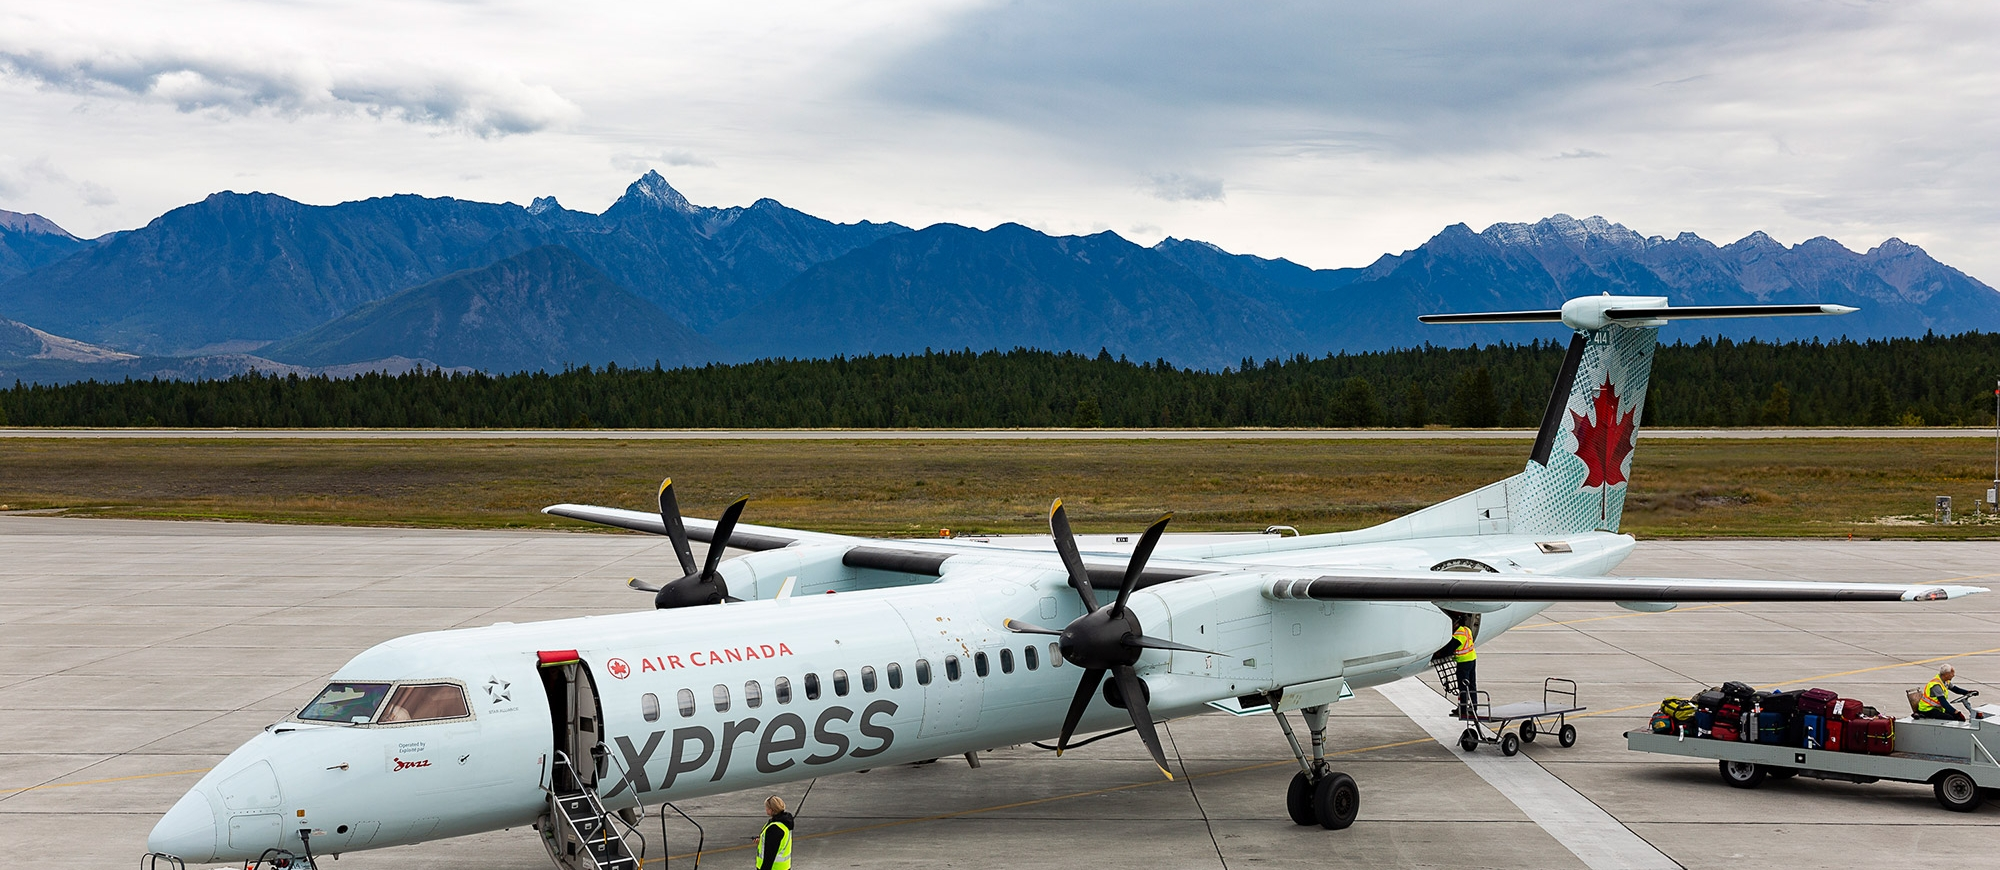 A plane with mountains in the background Canadian Rockies International Airport in Cranbrook, BC